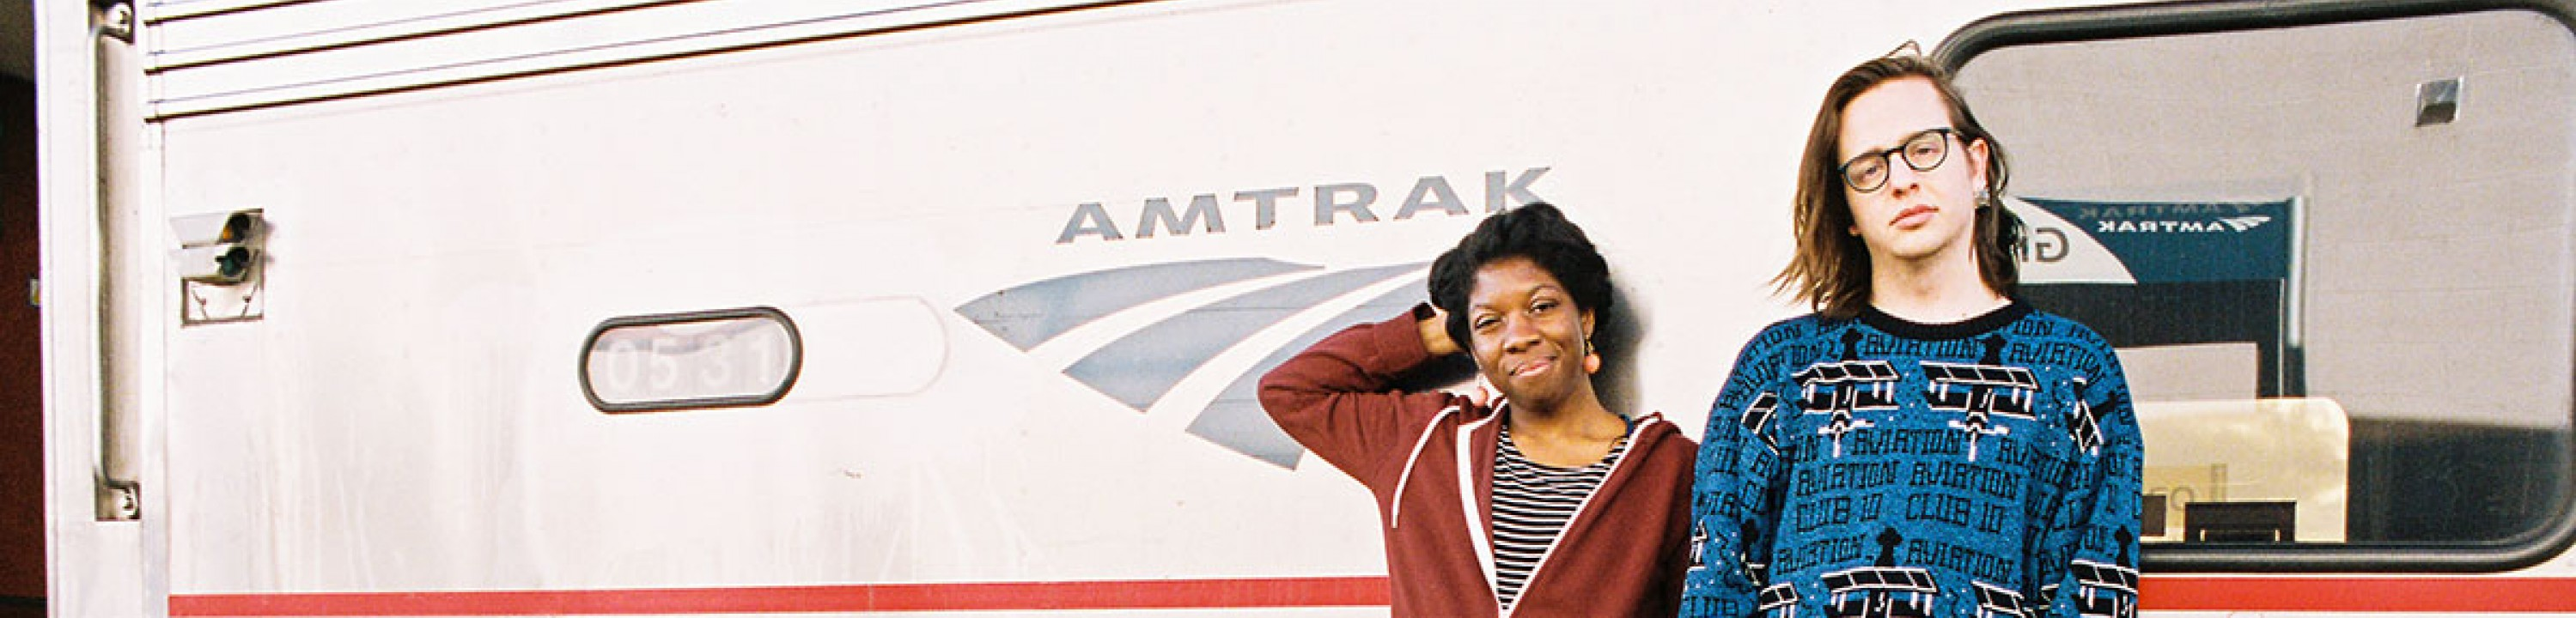 Two students pose in front of the Amtrak.